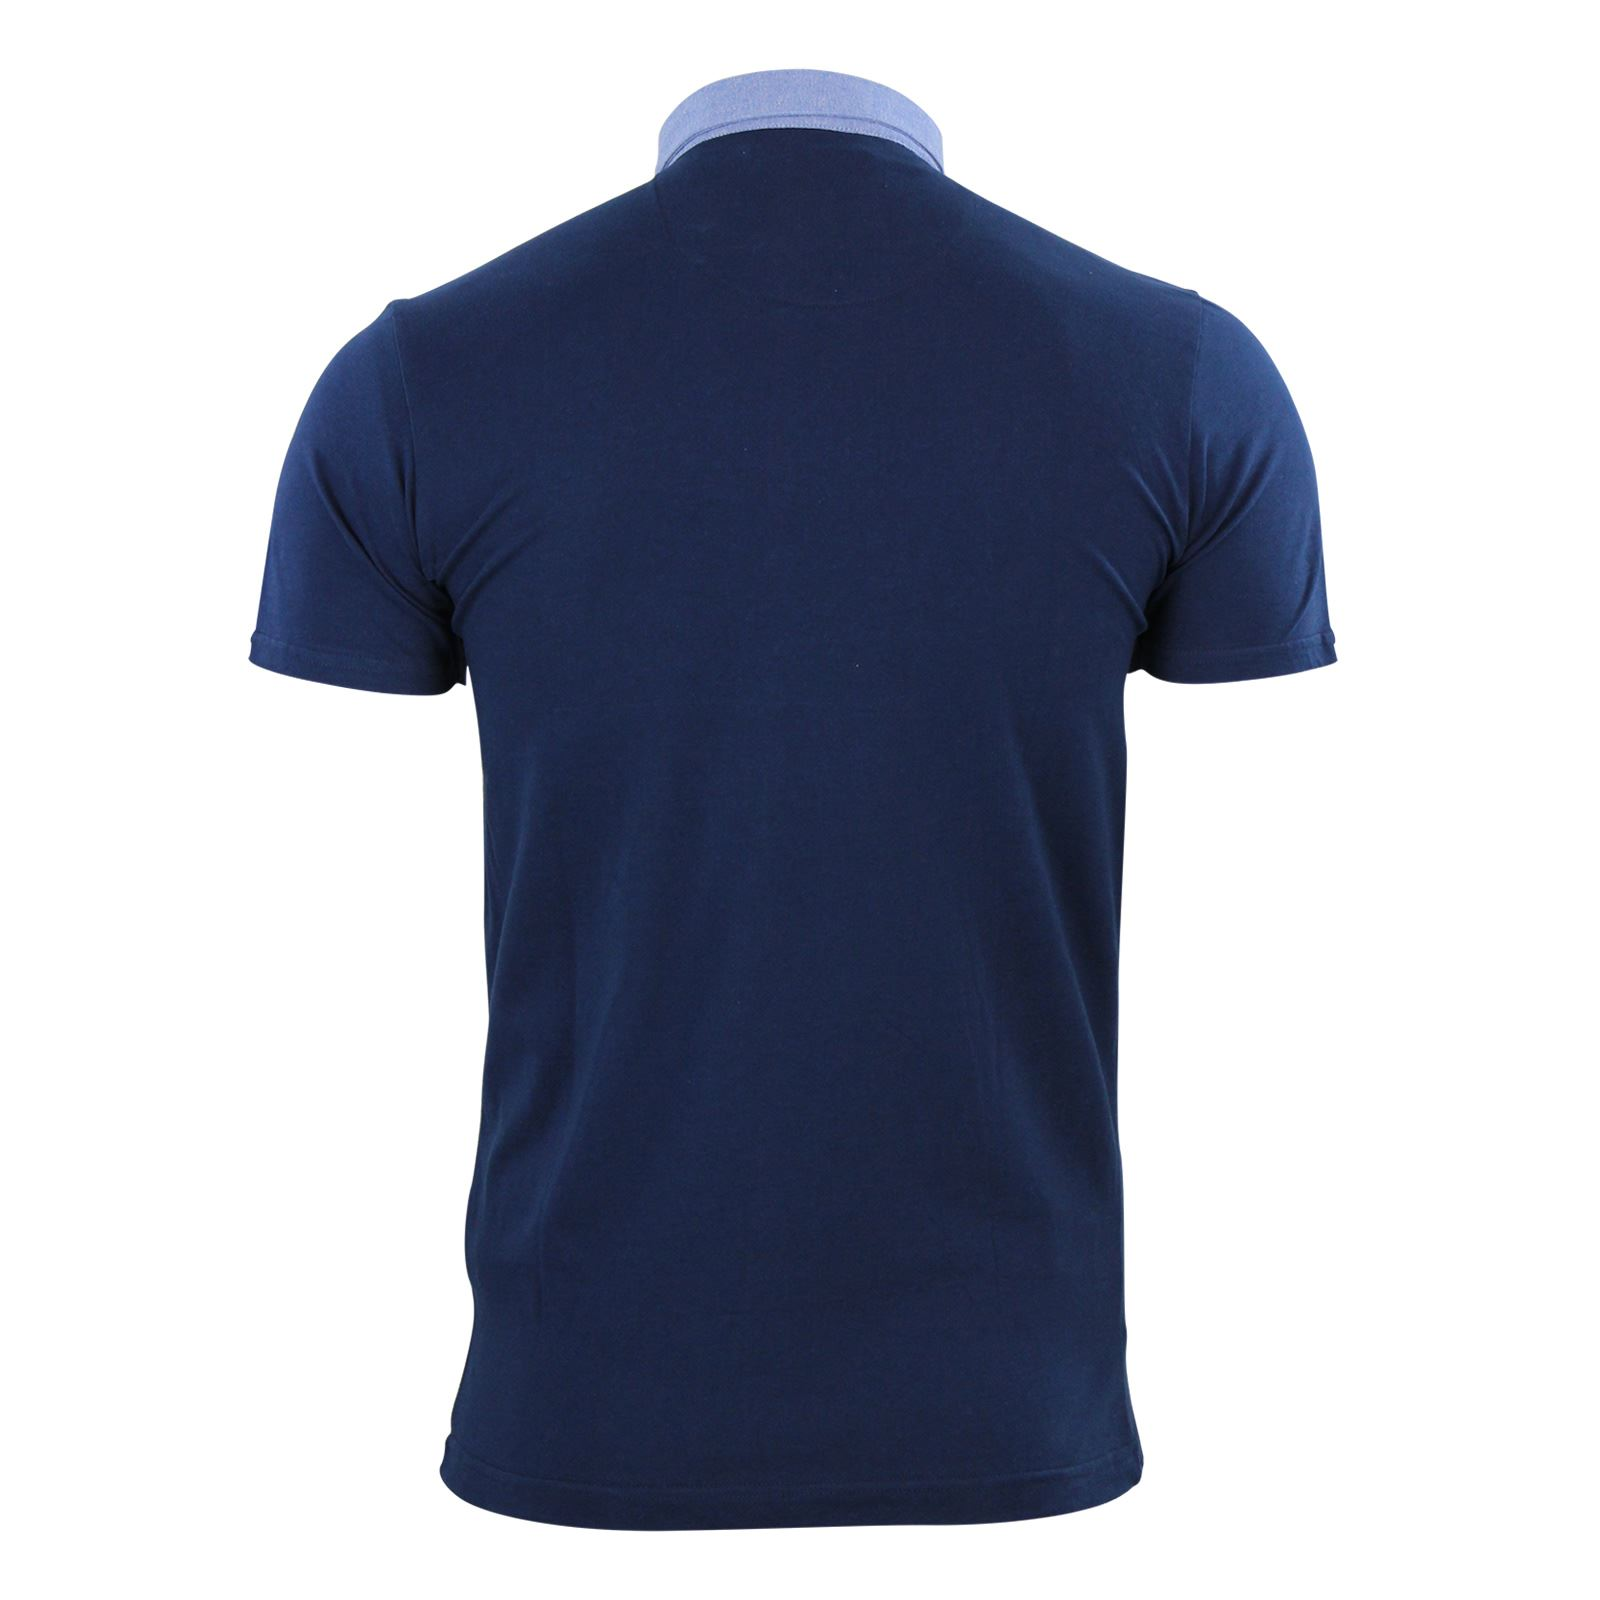 Mens-Polo-T-Shirt-Brave-Soul-Glover-Cotton-Collared-Short-Sleeve-Casual-Top thumbnail 43